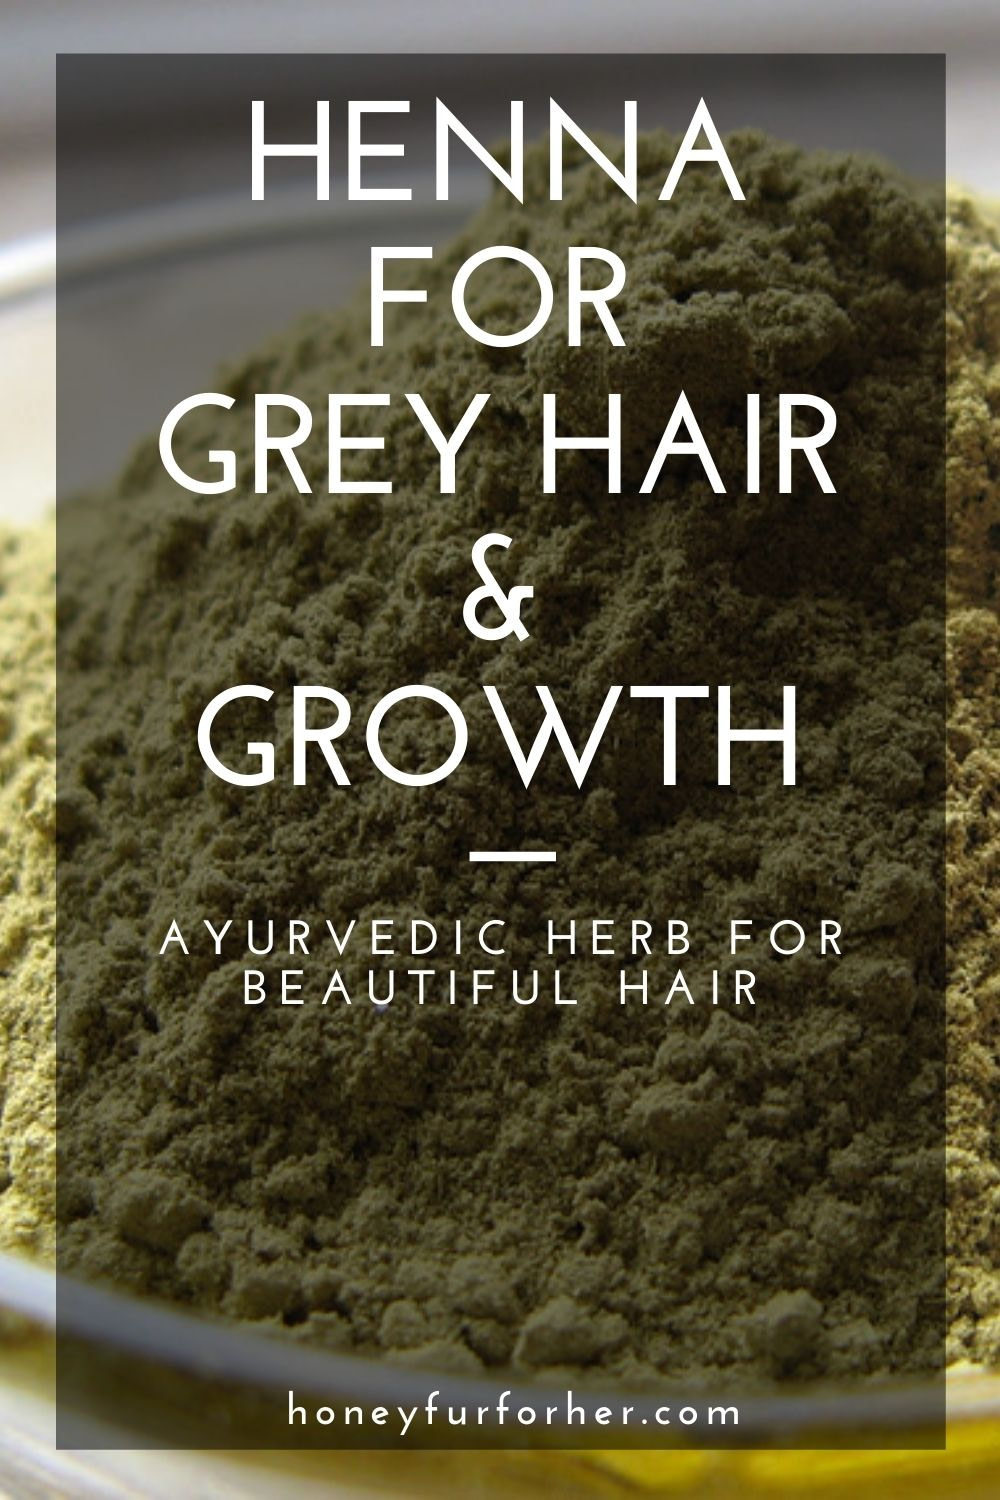 Henna For Grey Hair & Growth Pinterest Graphics Pin 1